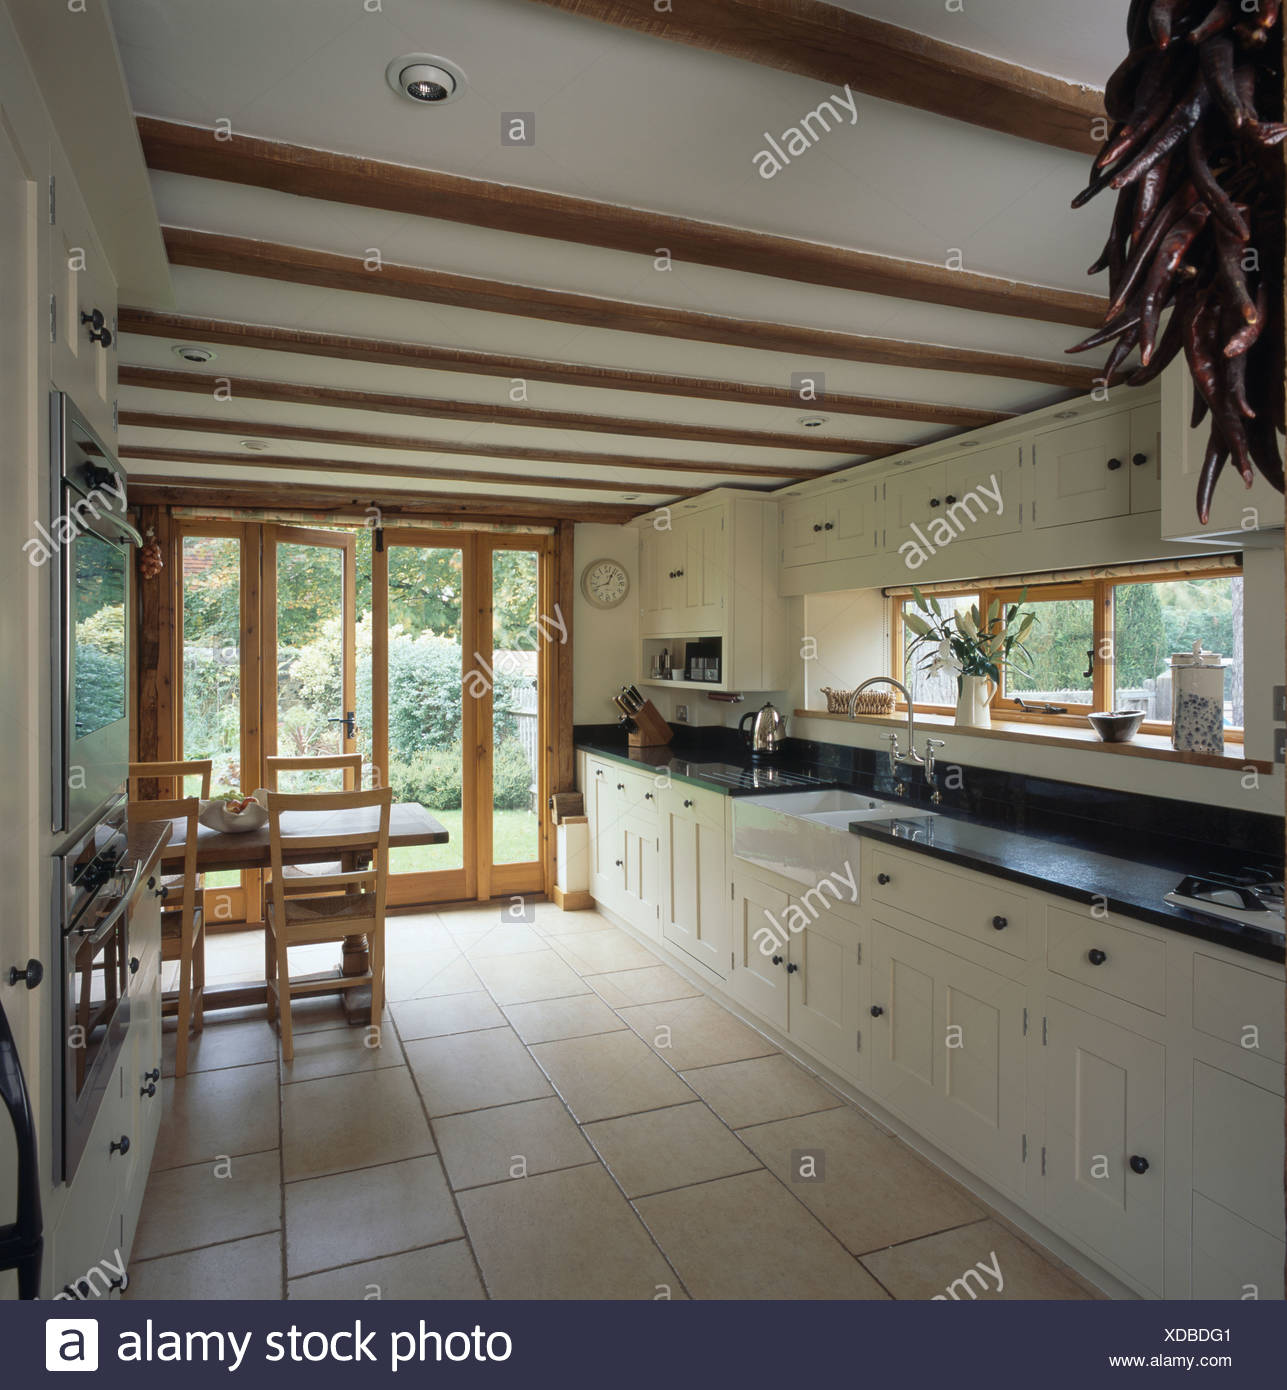 Cream ceramic floor tiles in country kitchen with white ...